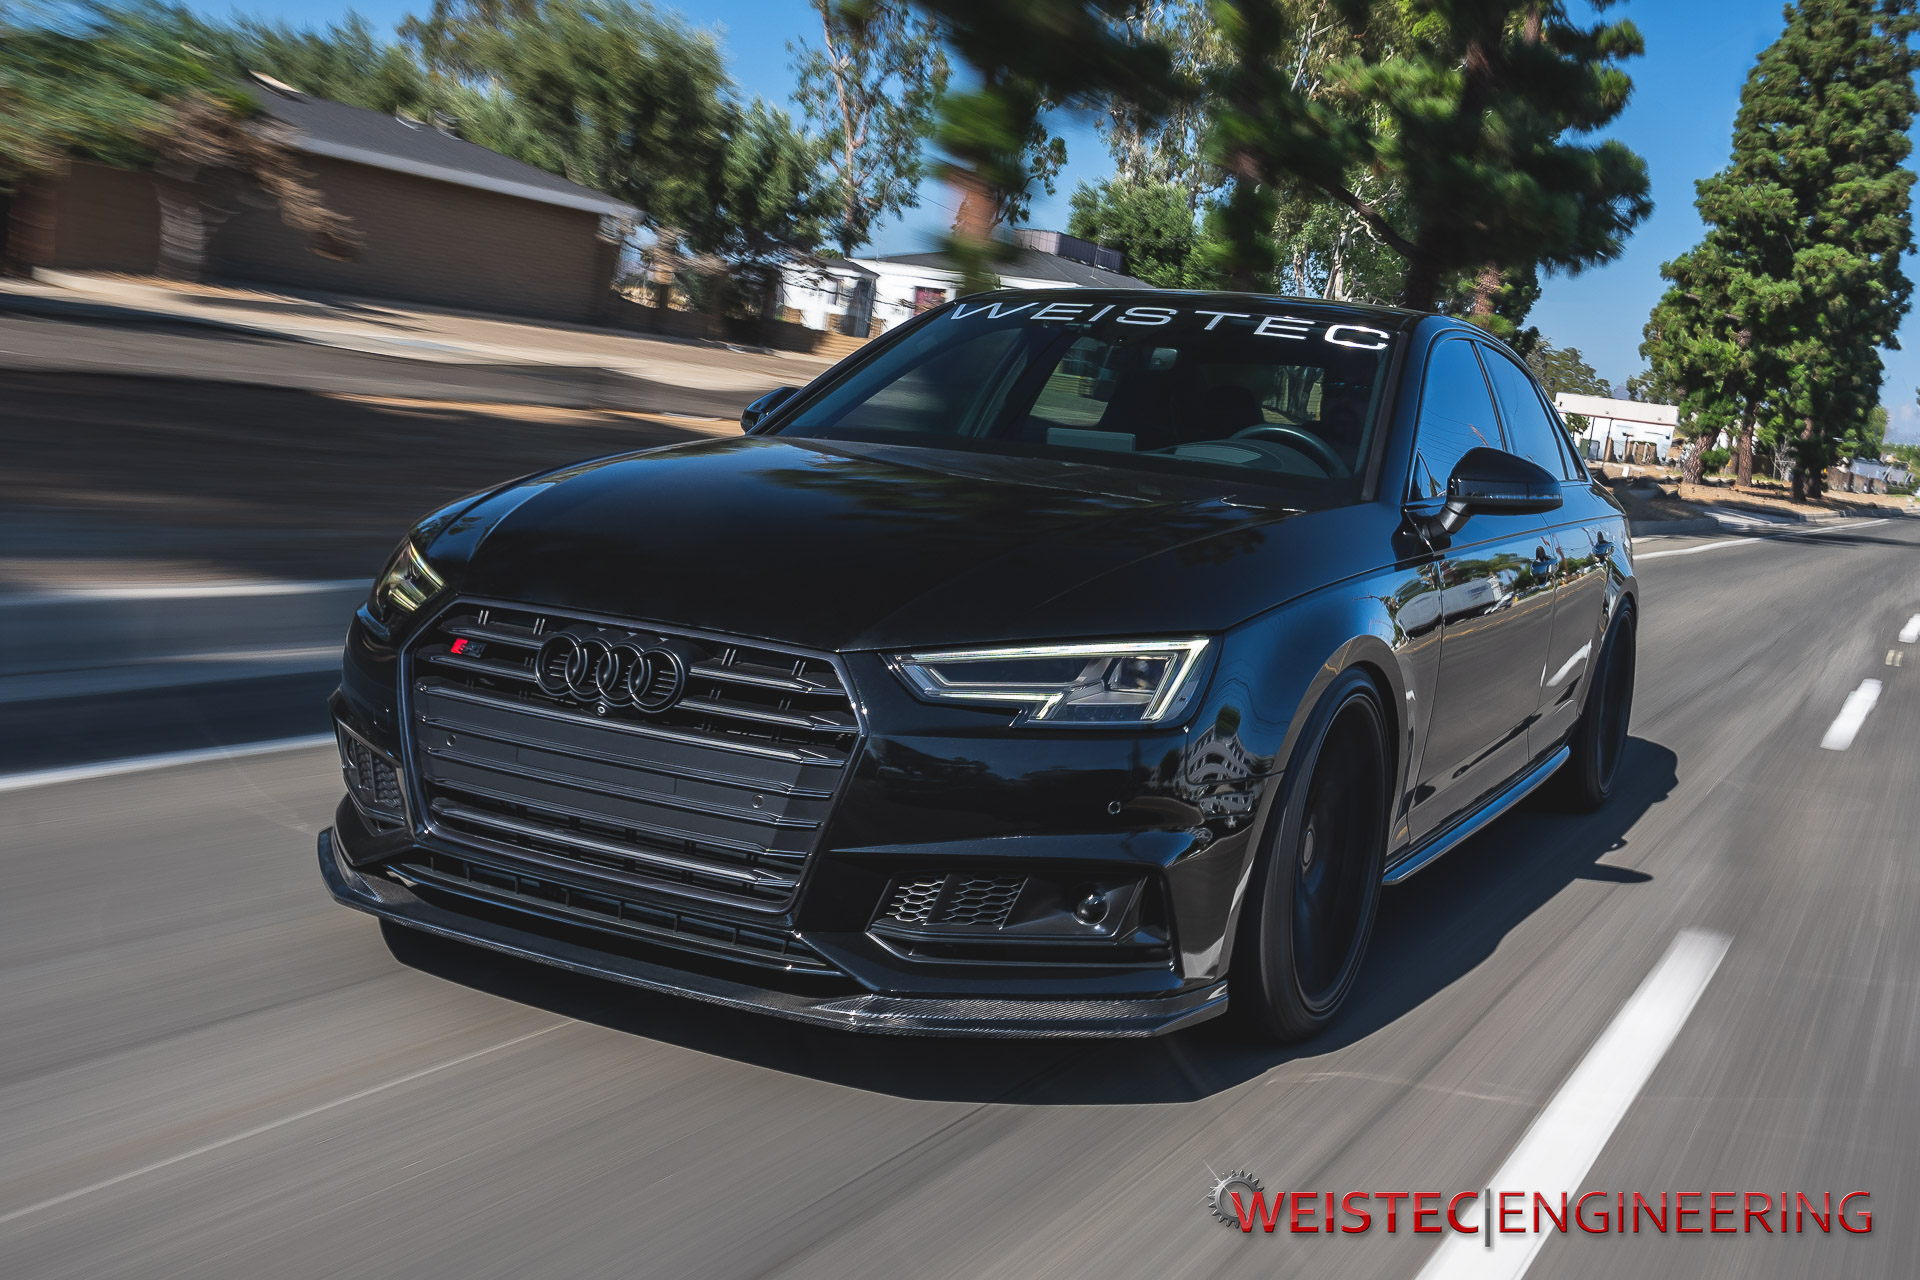 NEW!! WEISTEC ENGINEERING ECU FLASH TUNE FOR THE S4 3 0T